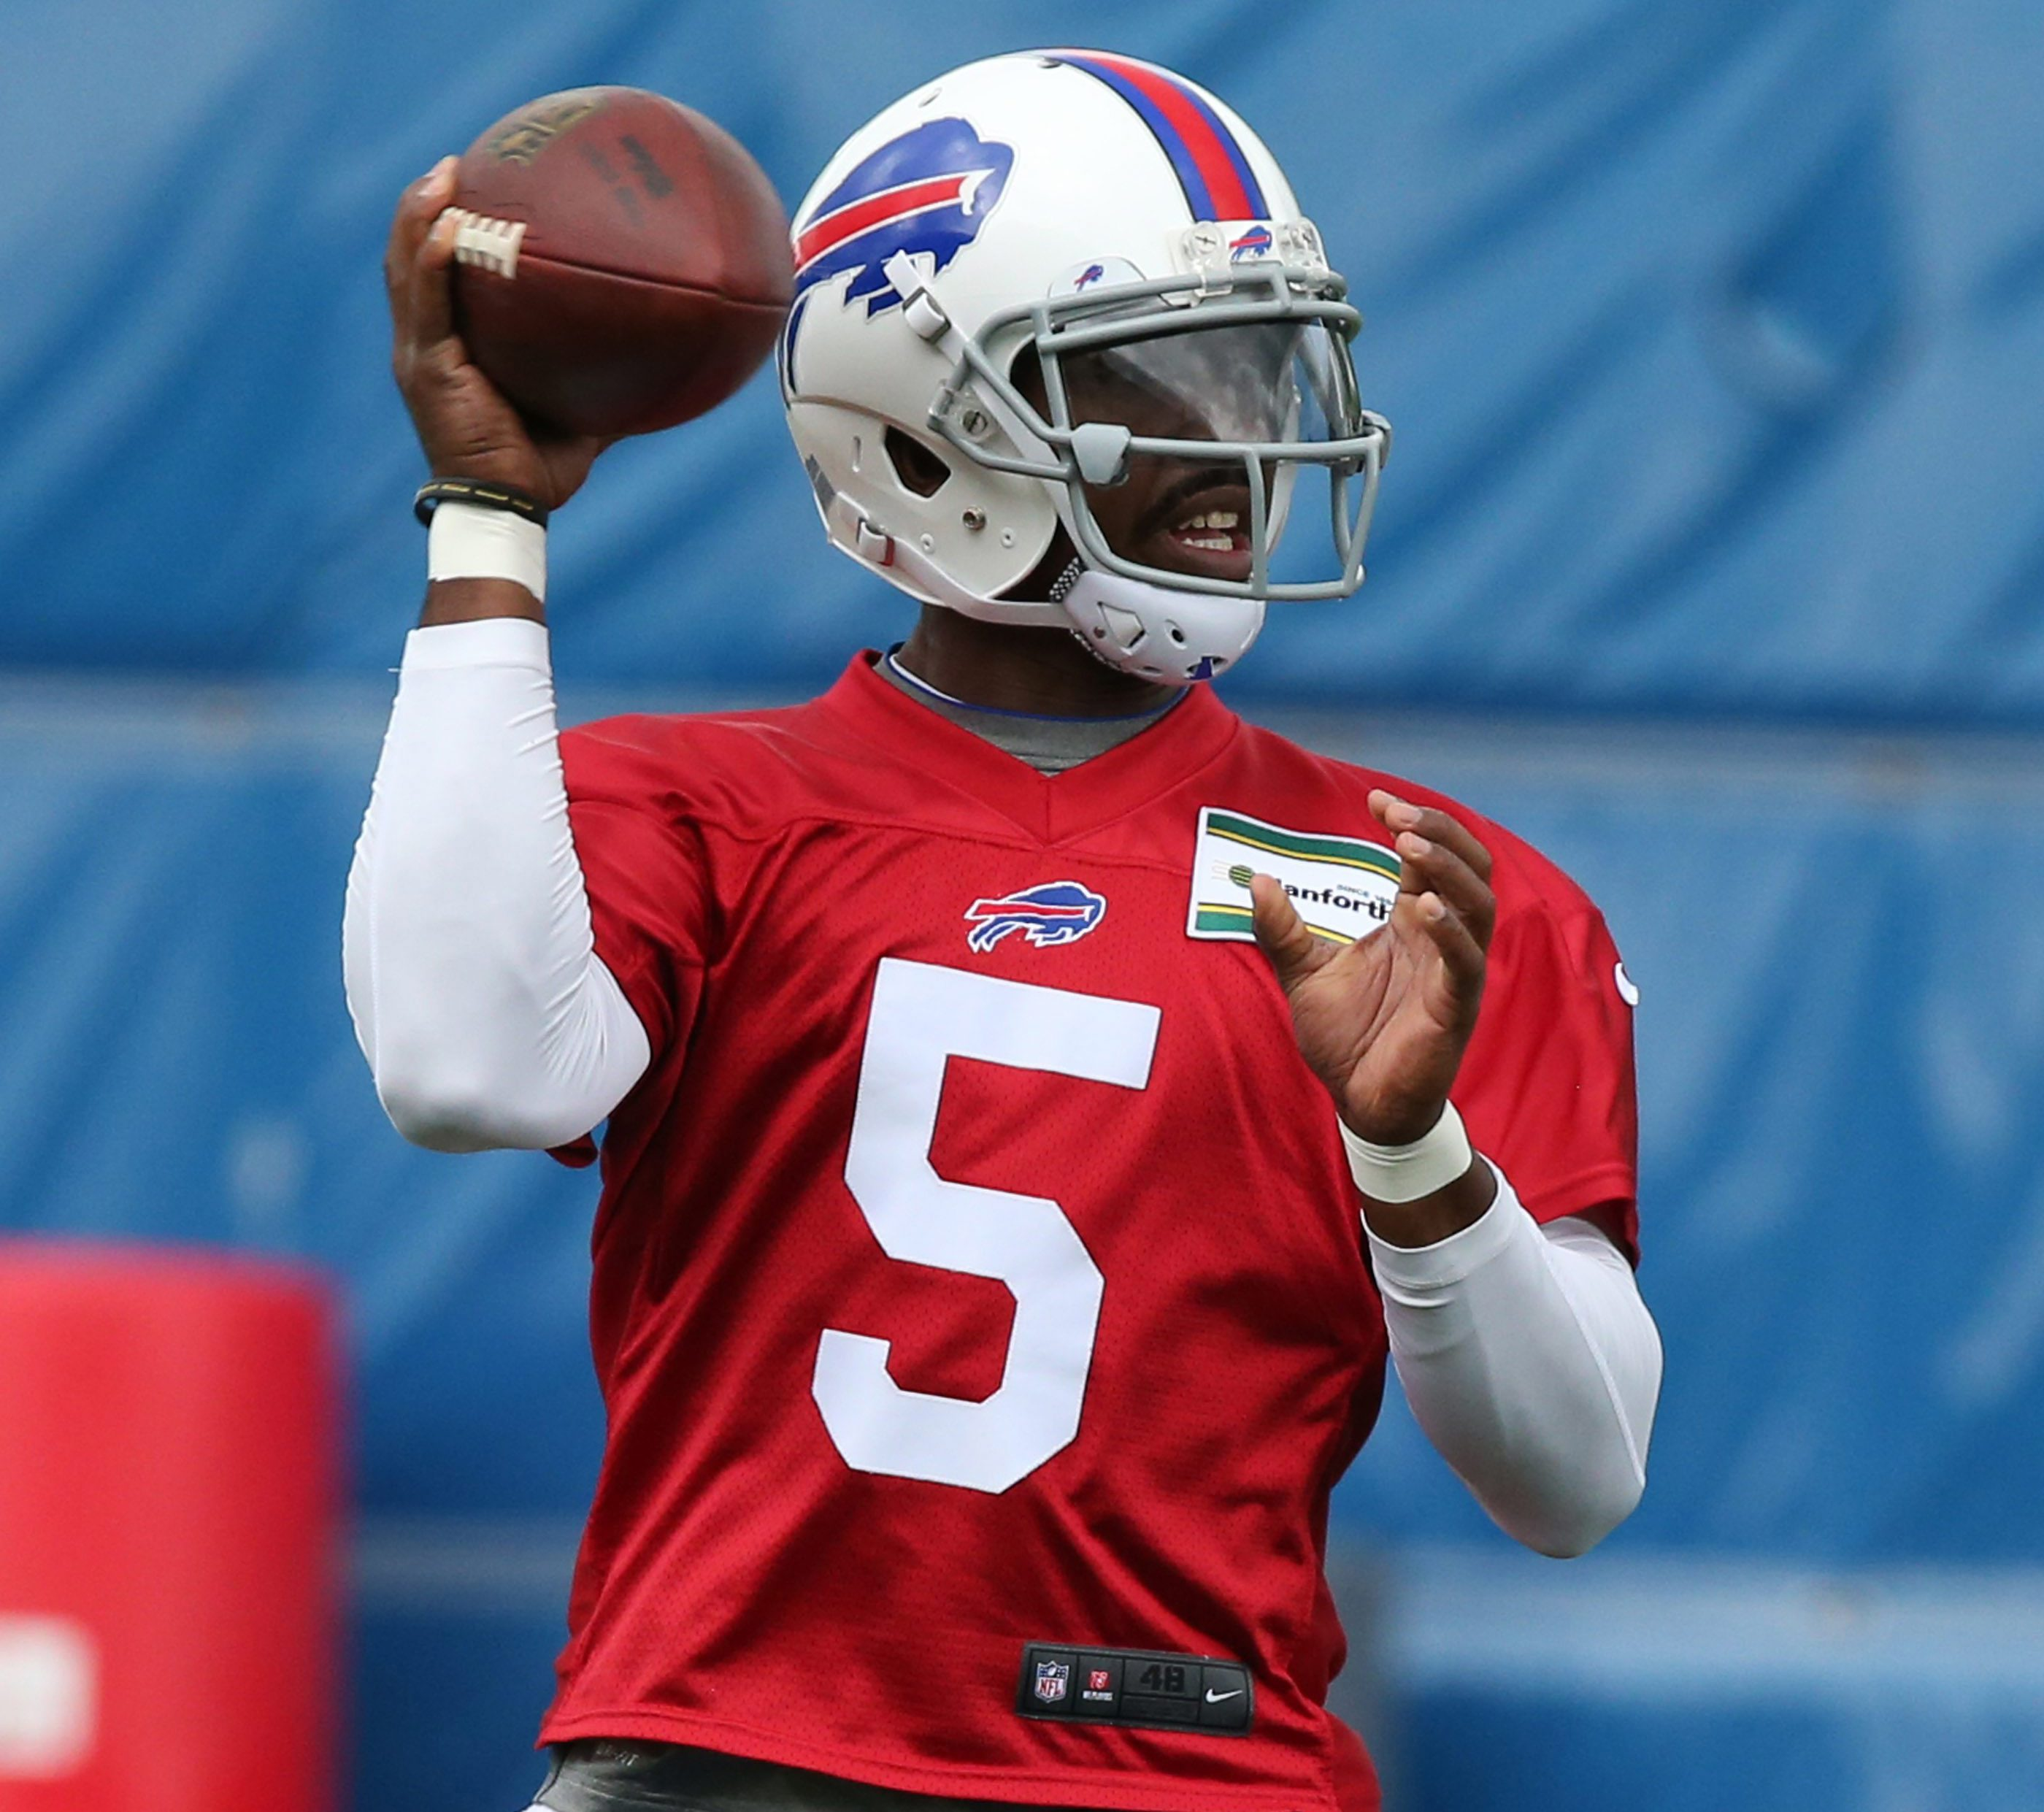 Bills quarterback Tyrod Taylor practices with the offense during the Bills OTA's at Ad Pro training center in Orchard on Wednesday.